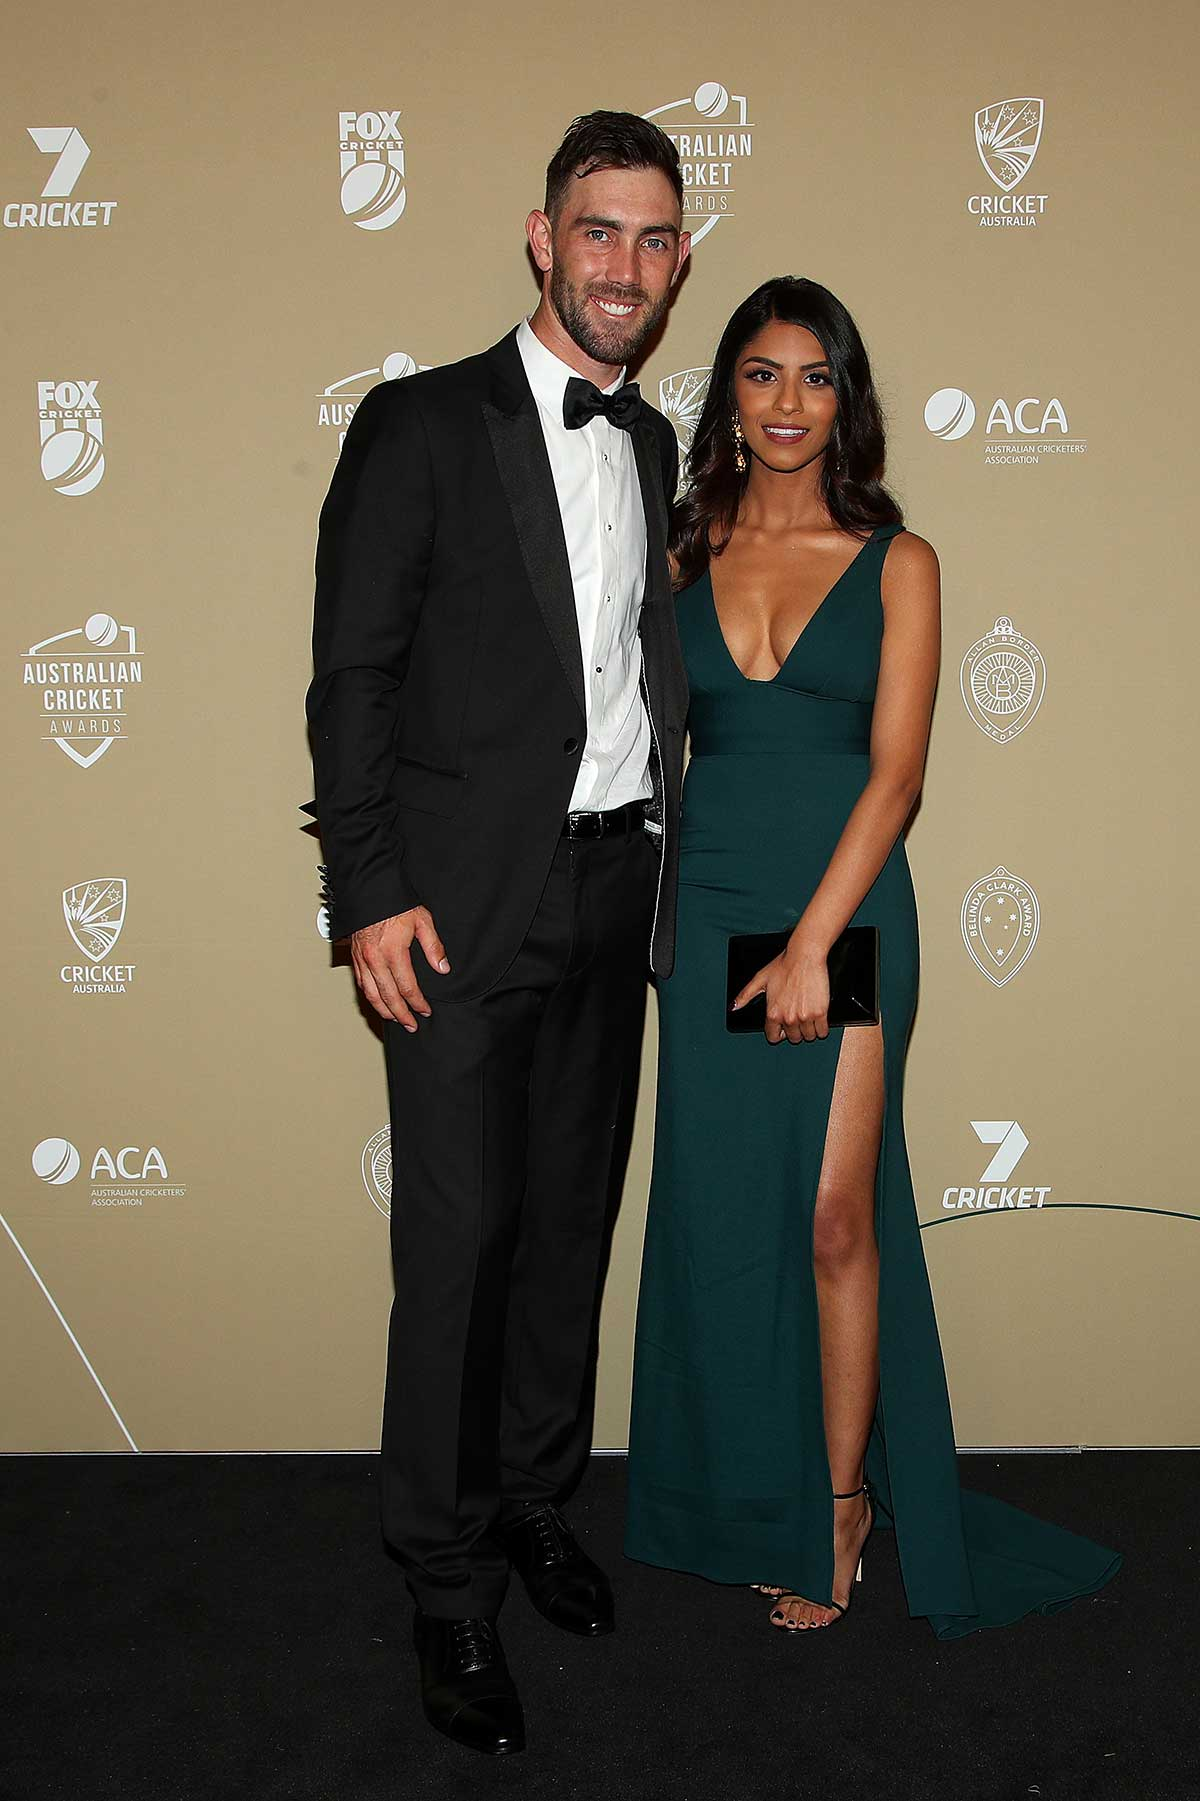 Glenn Maxwell and Vini Raman // Getty